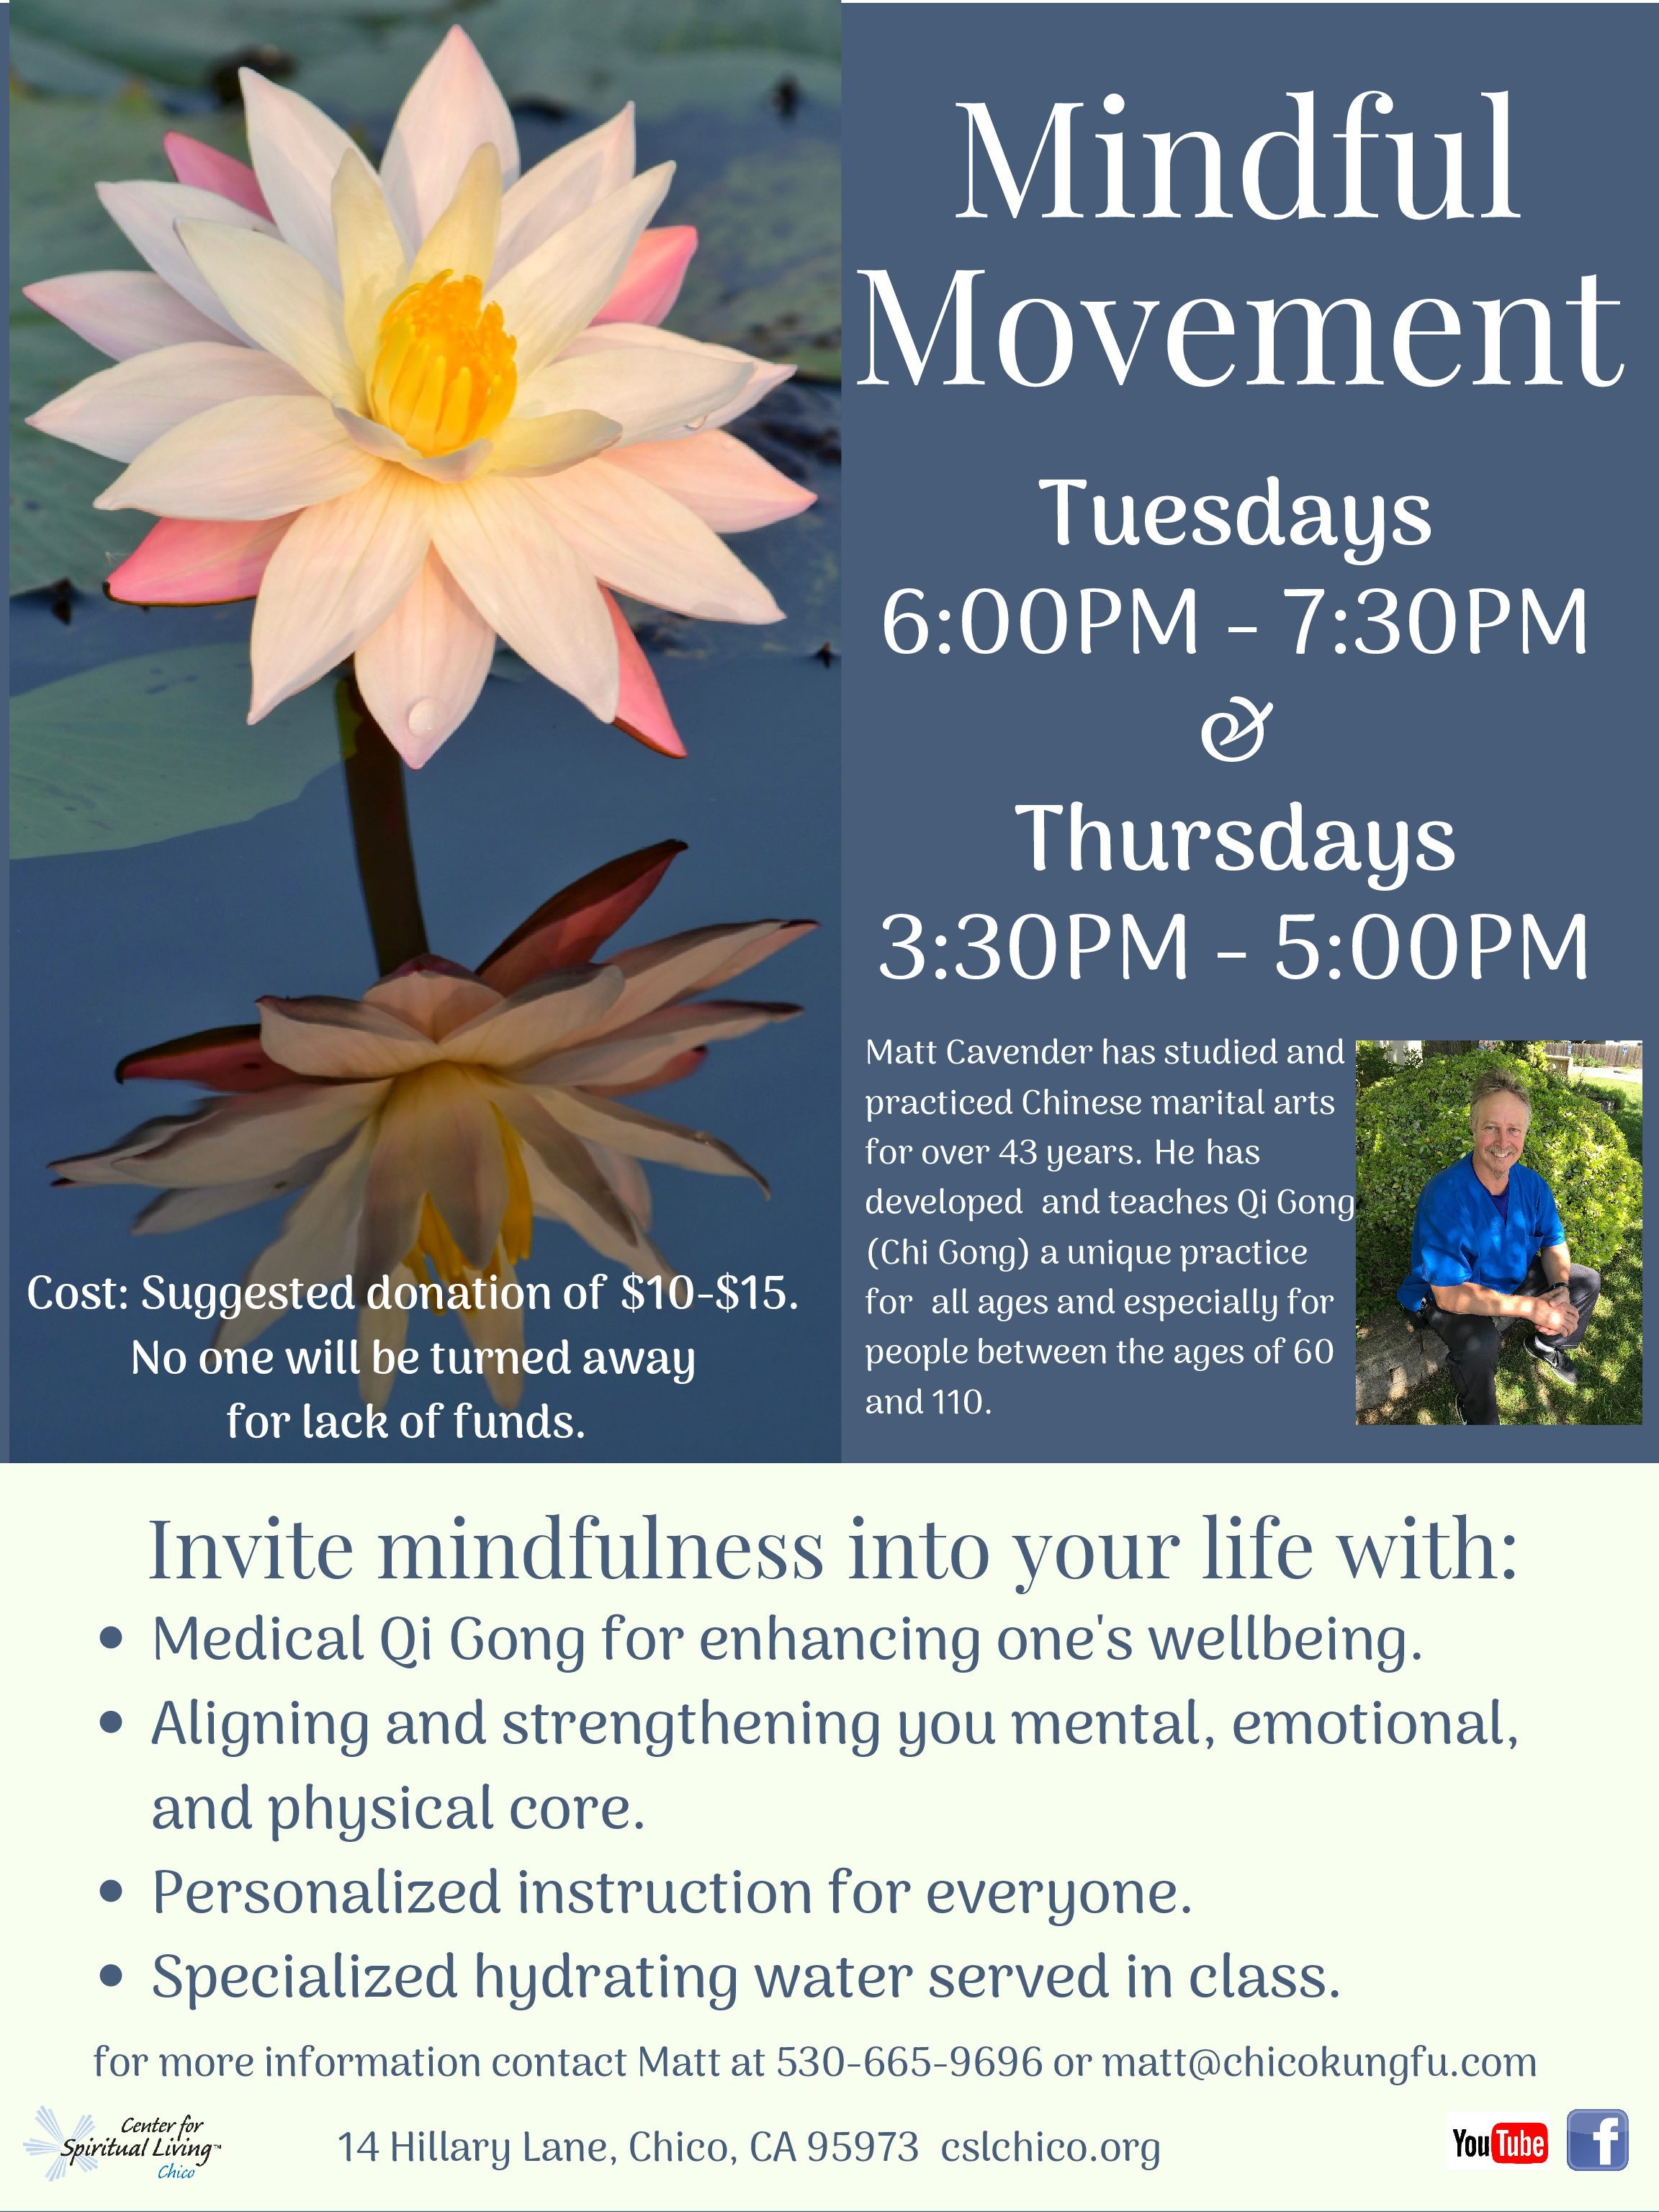 Mindful Movement Center For Spiritual Living Chico